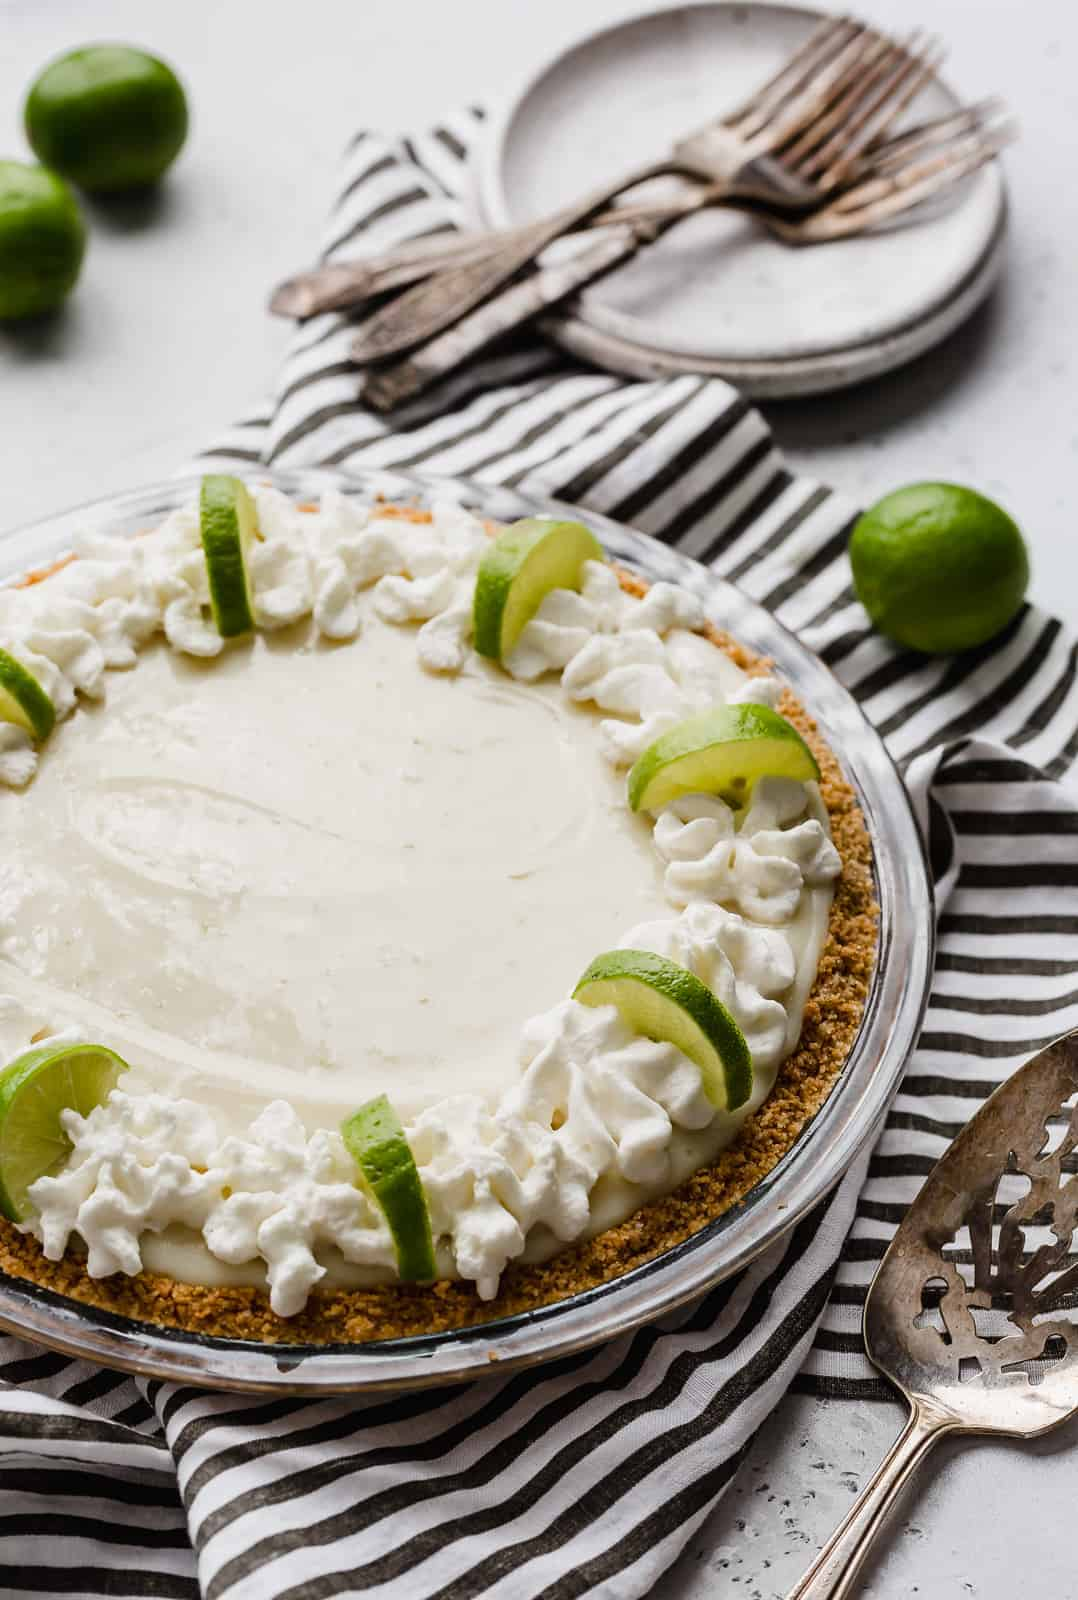 A key lime pie topped with whipped cream and lime slices.